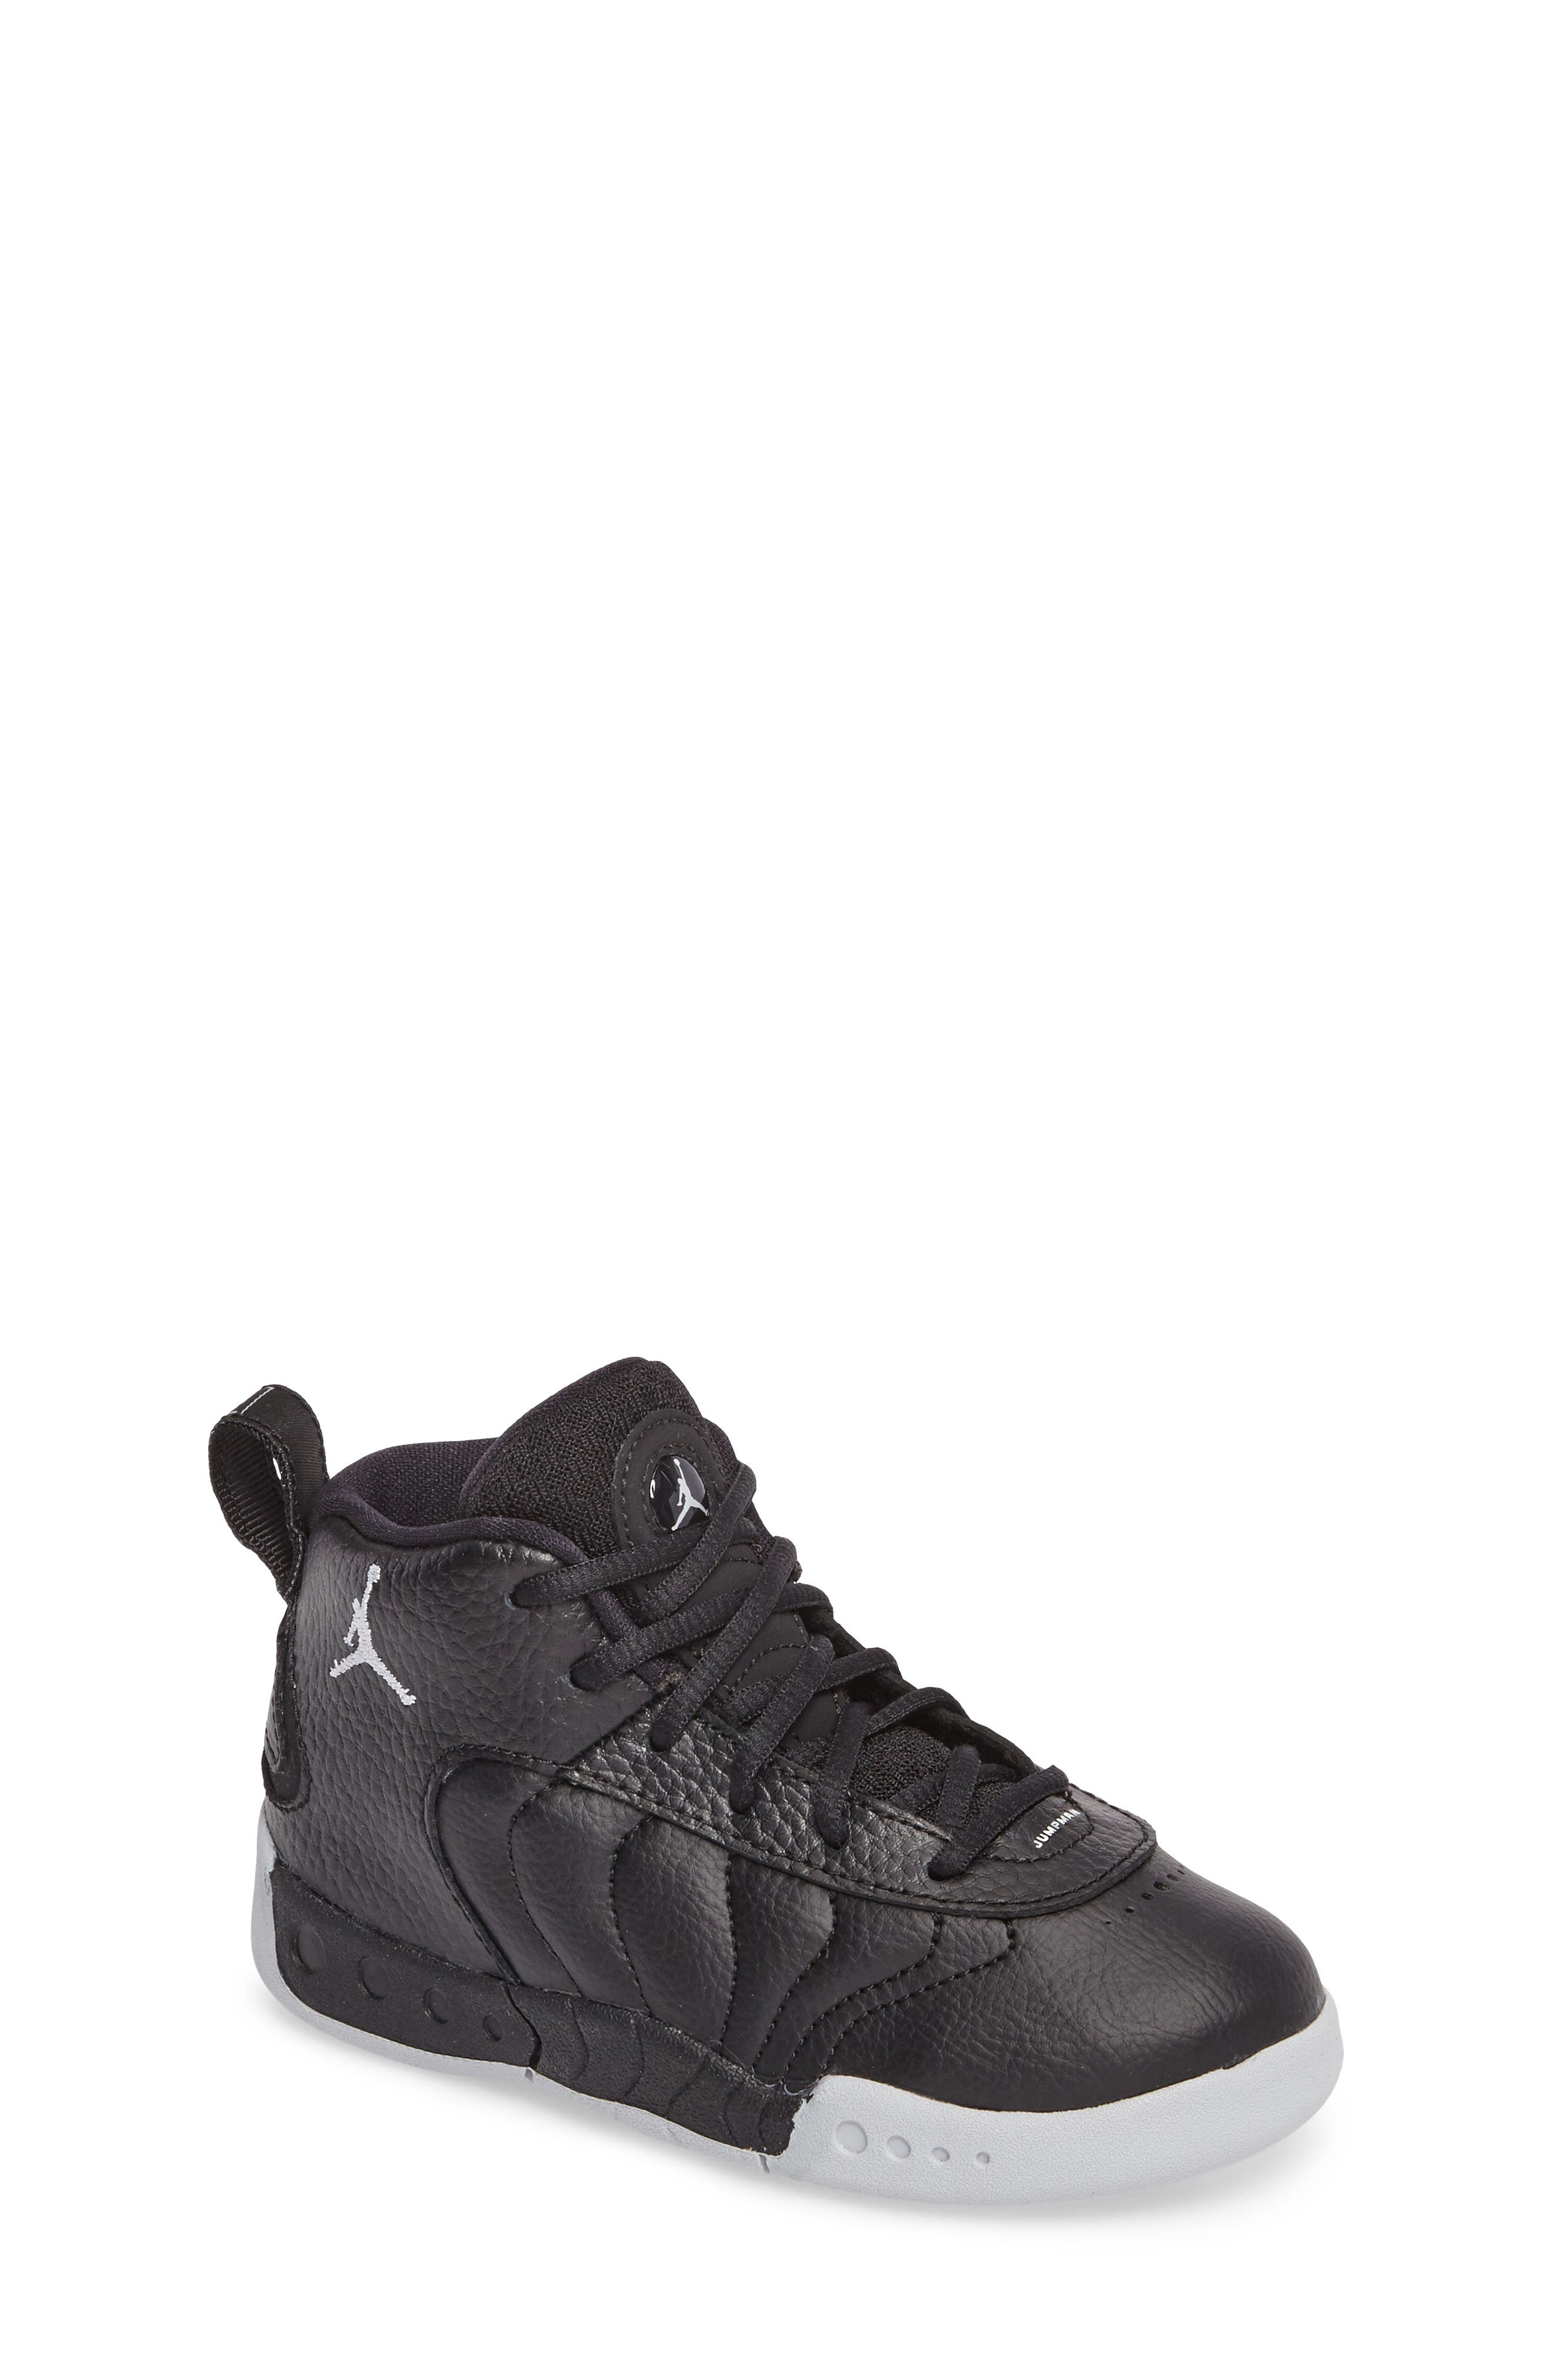 Jordan Jumpman Pro BT Mid Top Sneaker,                         Main,                         color, 012